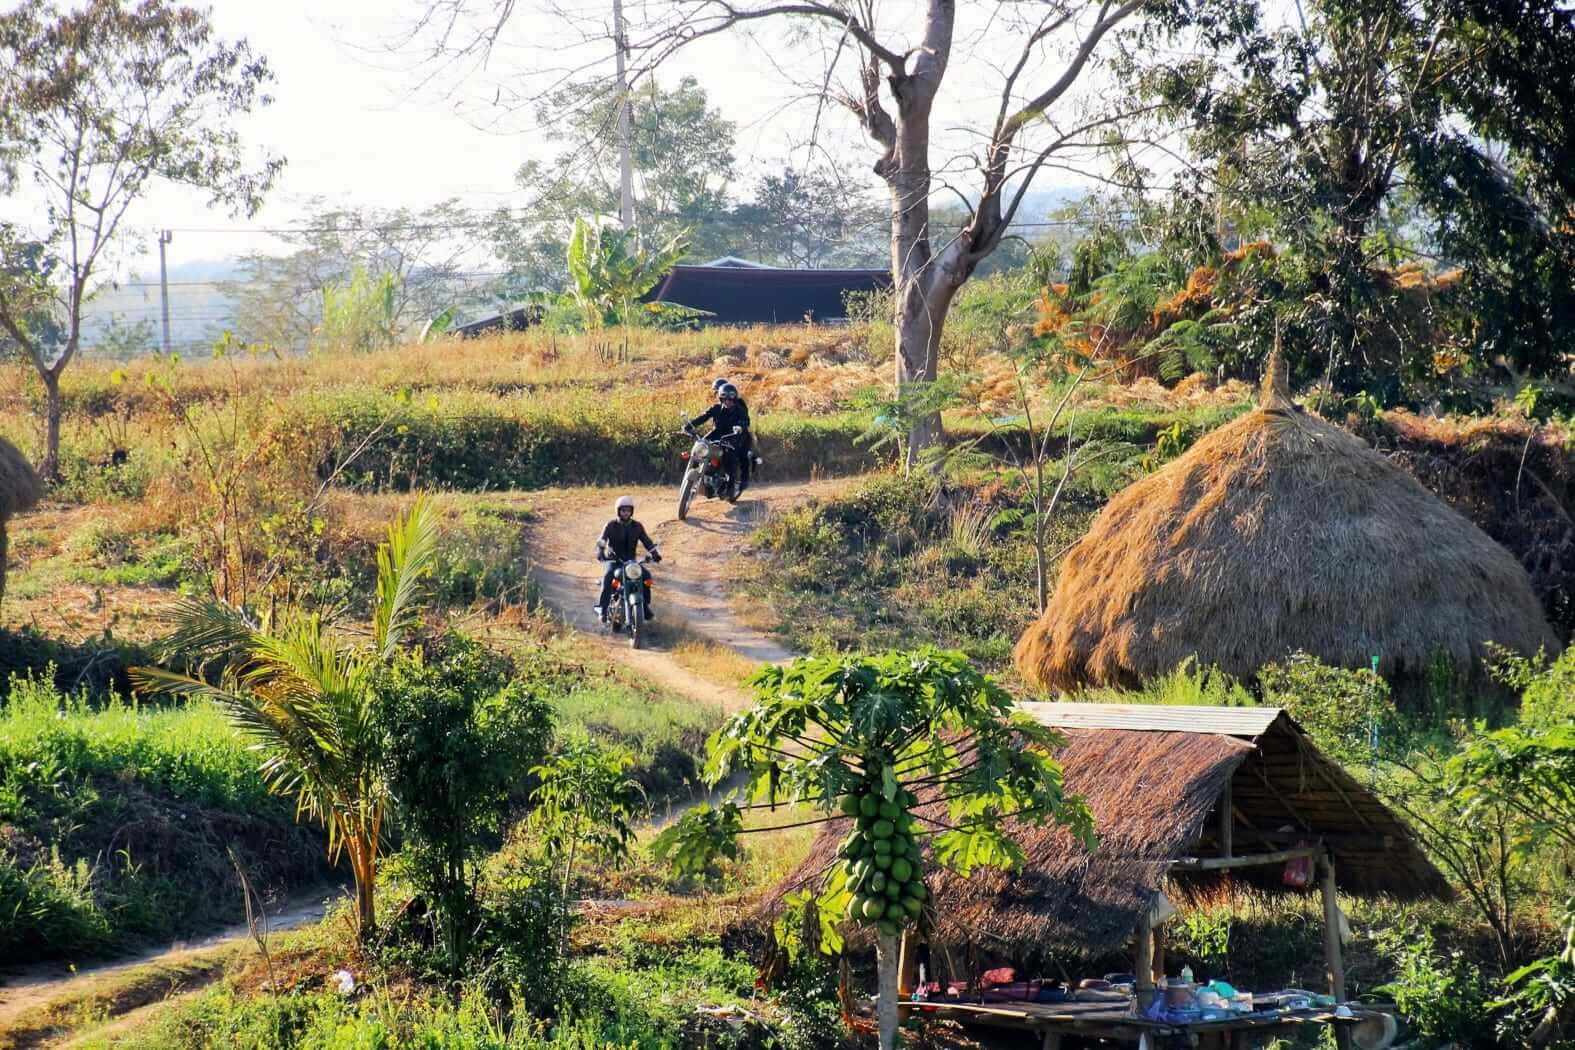 Ride a vintage bike through Thailand? Why not!